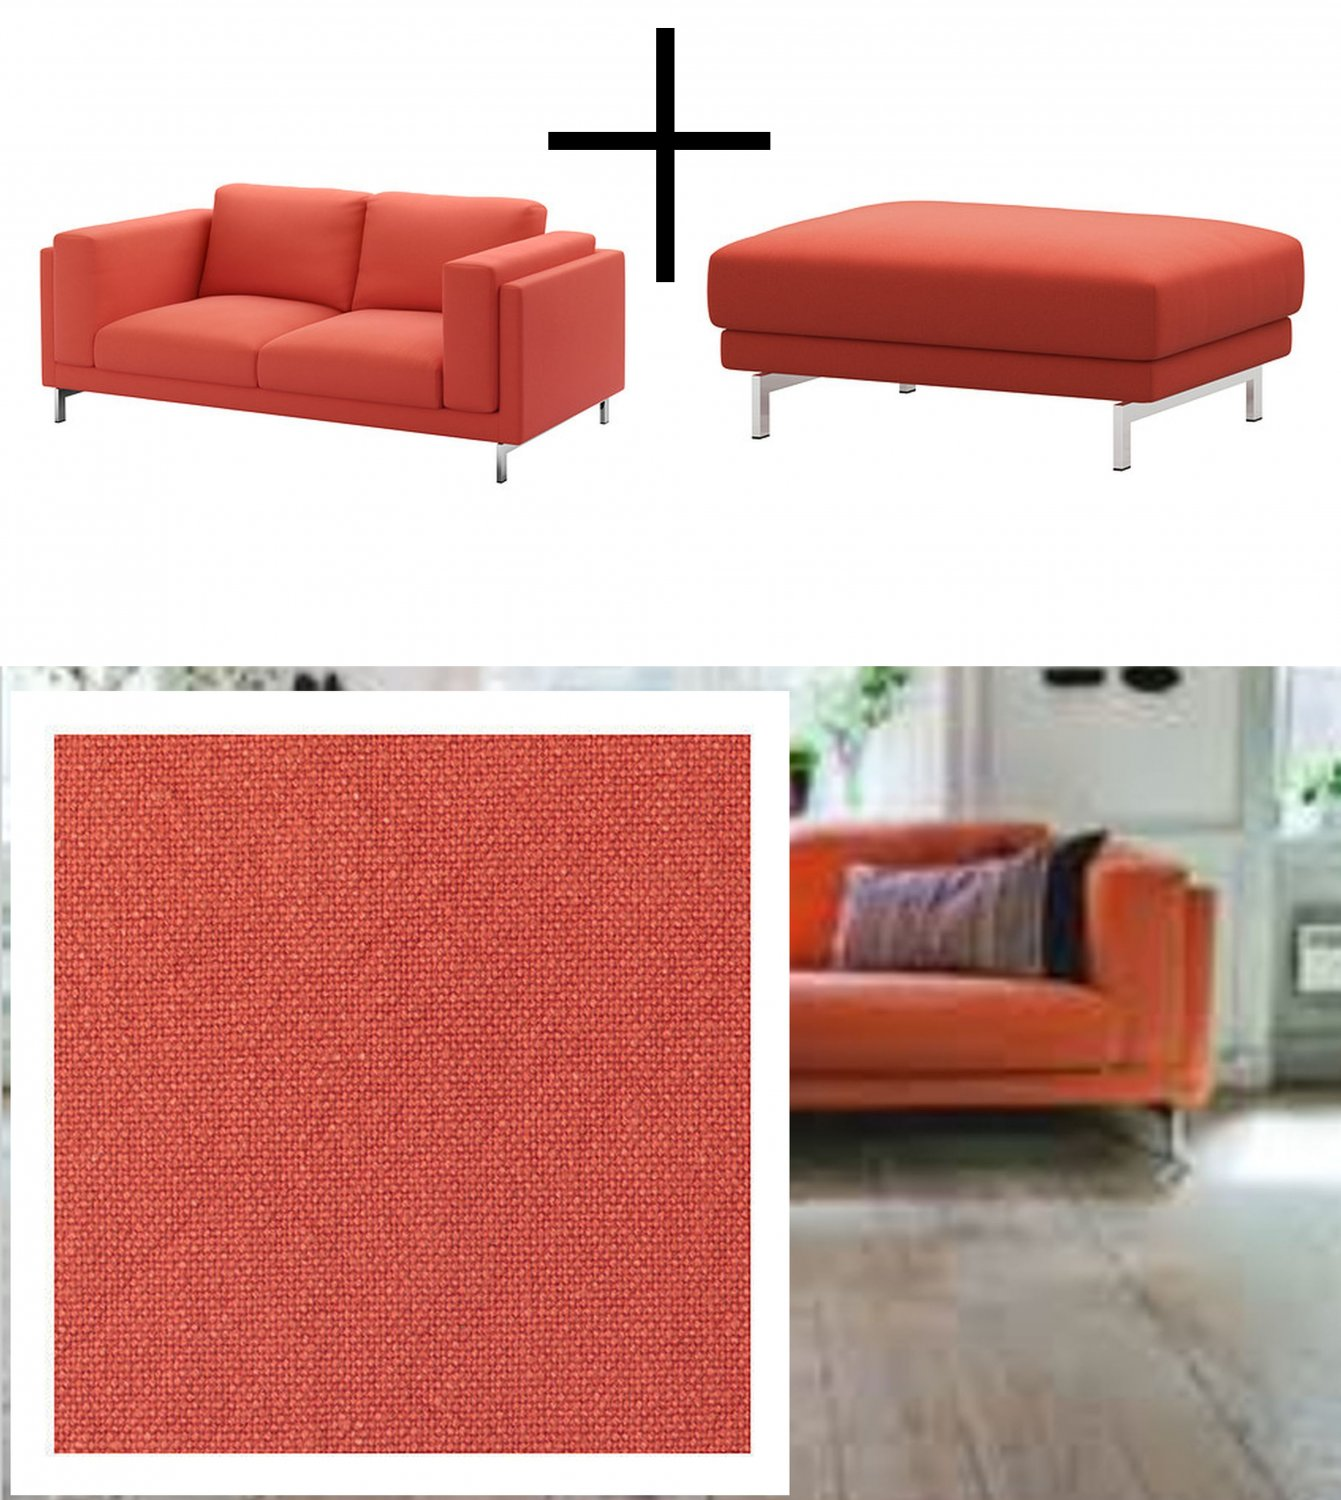 Ikea Nockeby Two Seat Sofa Ikea Nockeby Loveseat And Footstool Slipcovers 2 Seat Sofa